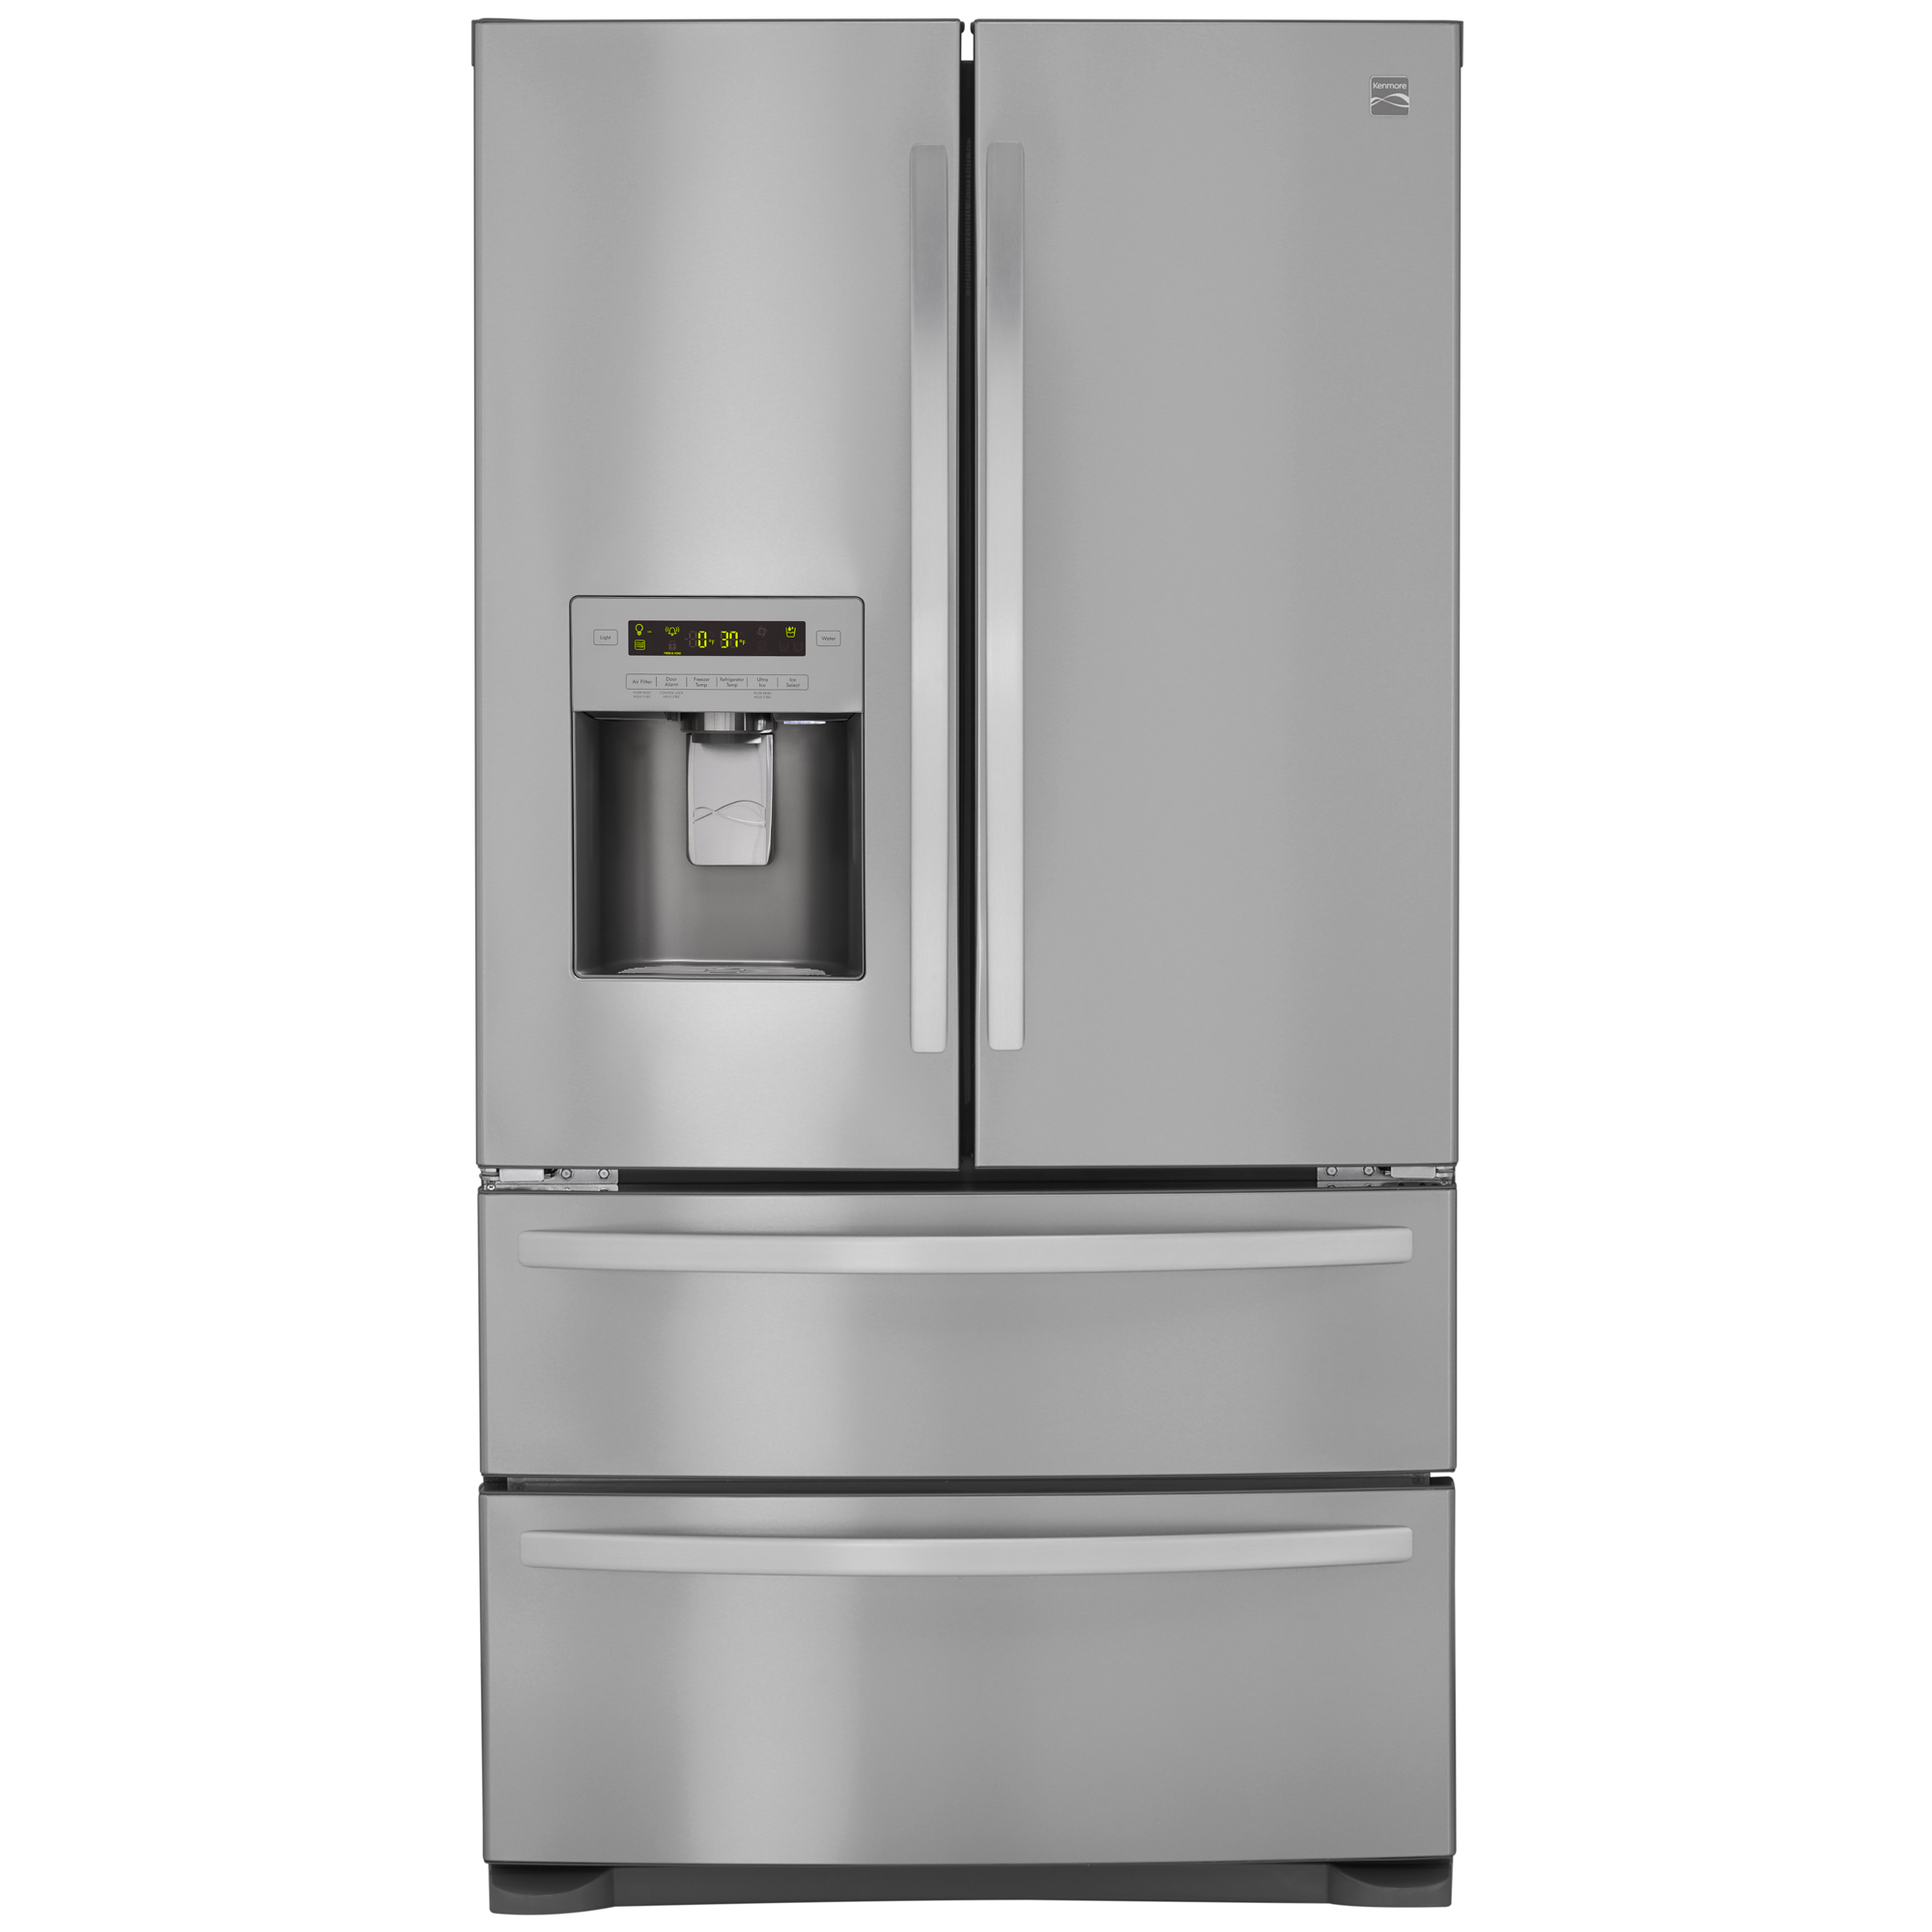 72495-26-7-cu-ft-4-Door-French-Door-Refrigerator-w-Dual-Freezer-Drawers-%E2%80%93-Active-Finish%E2%84%A2